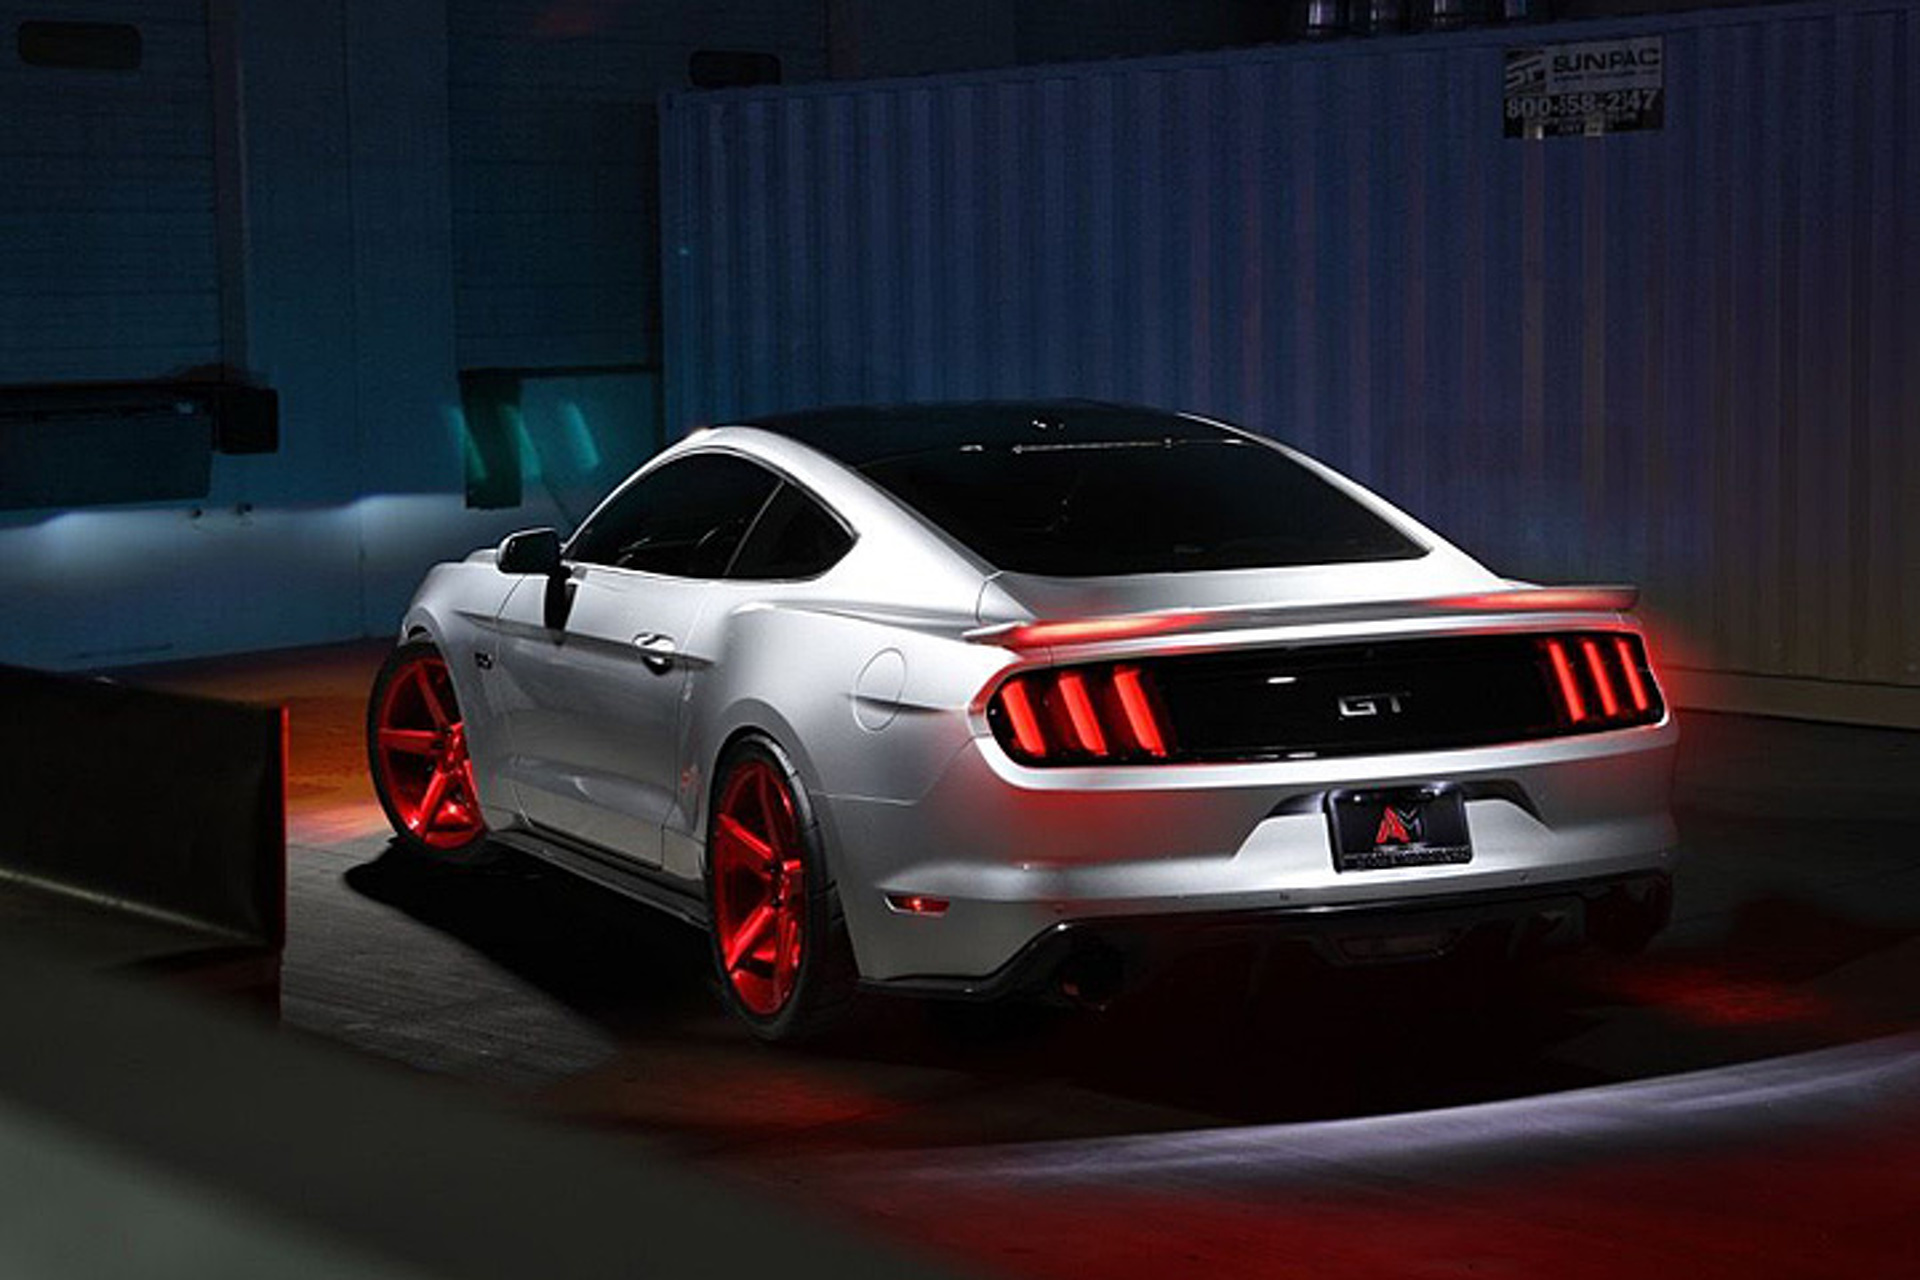 This 700HP SEMA Ford Mustang Needs a New Home